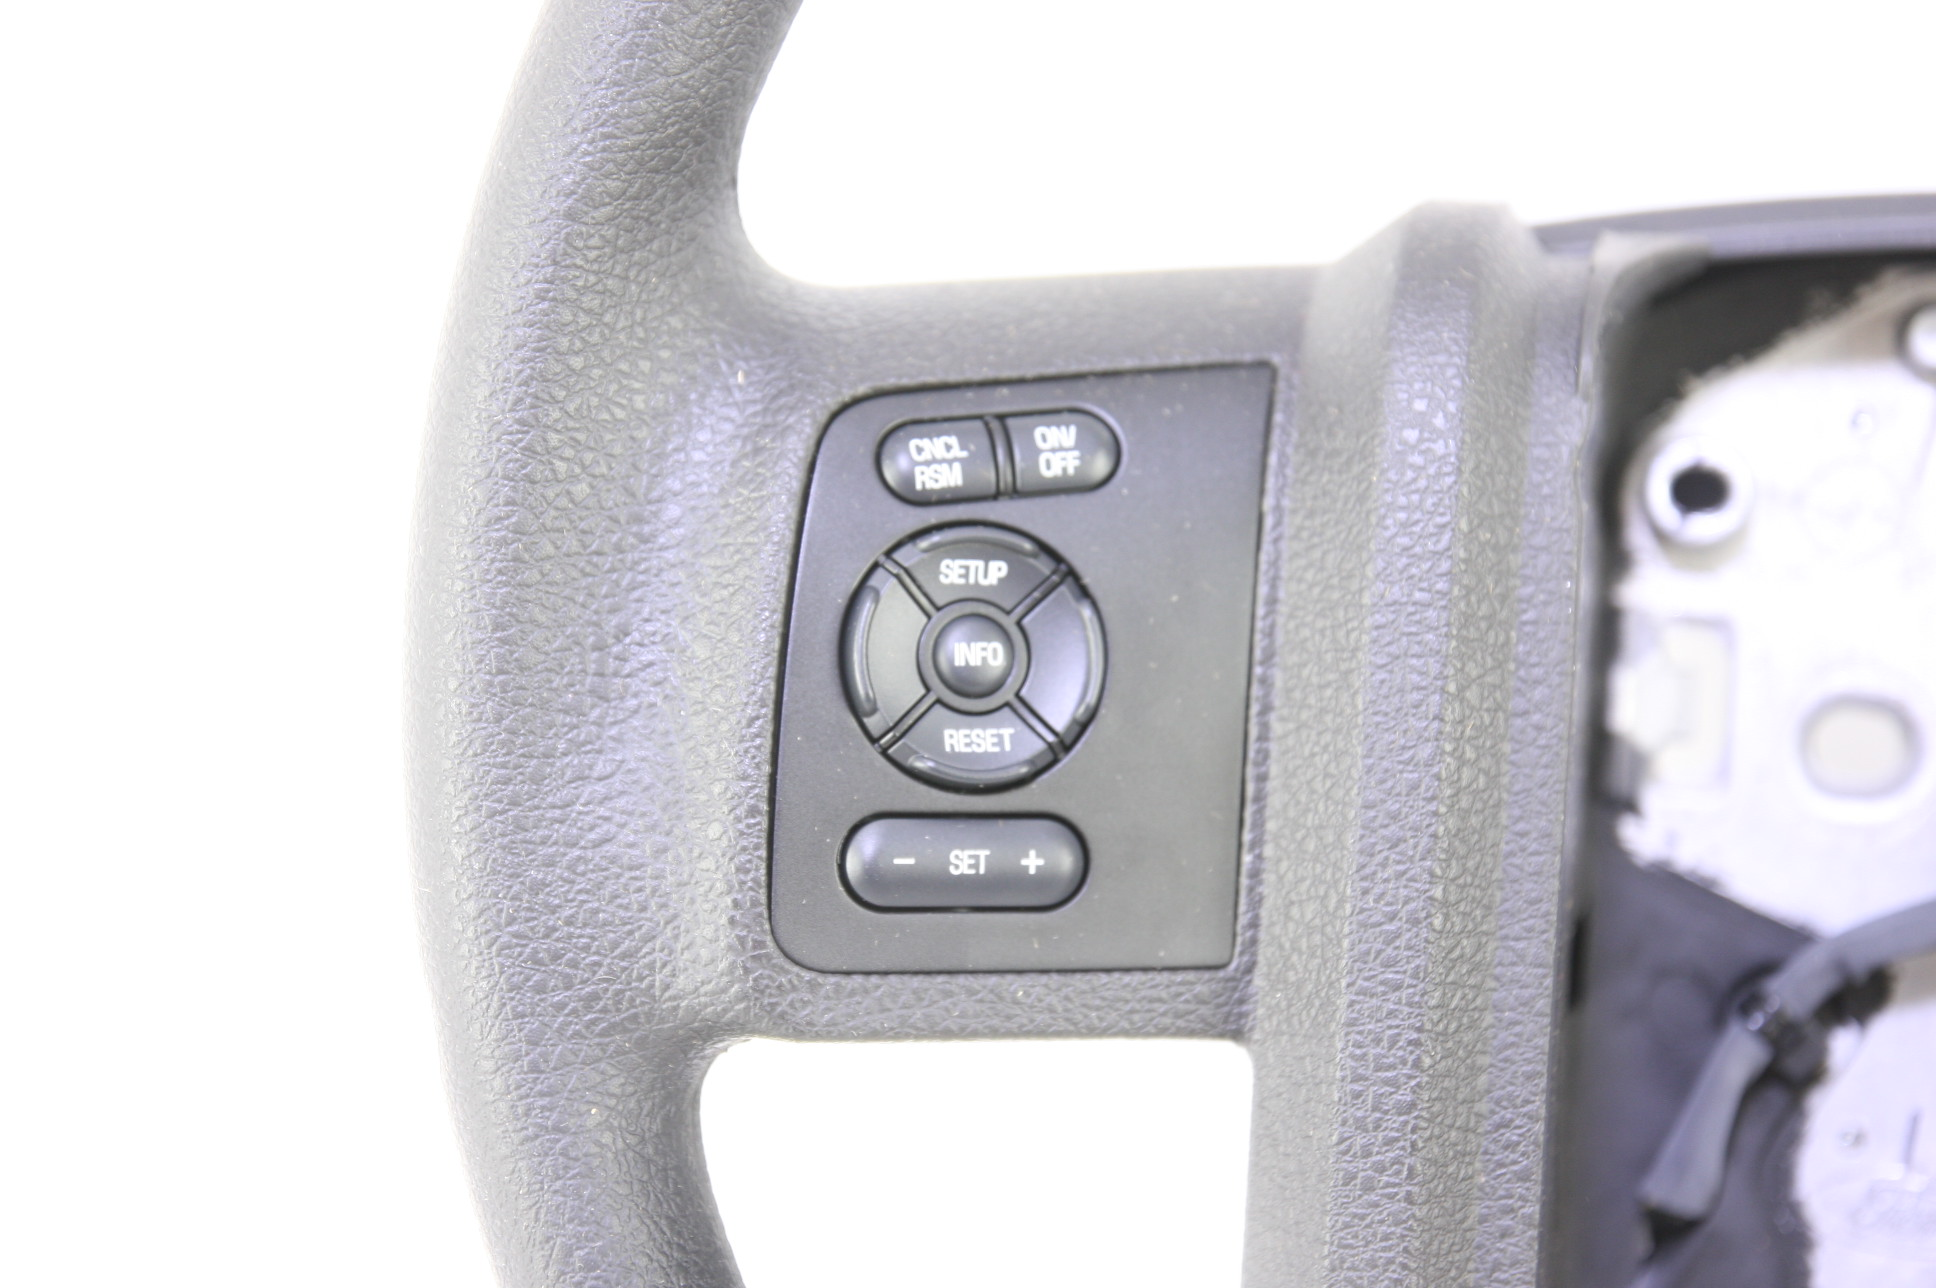 *** New OEM BC3Z3600CC Ford 11-12 F-250 Super Duty Steering Wheel Free Shipping - image 2